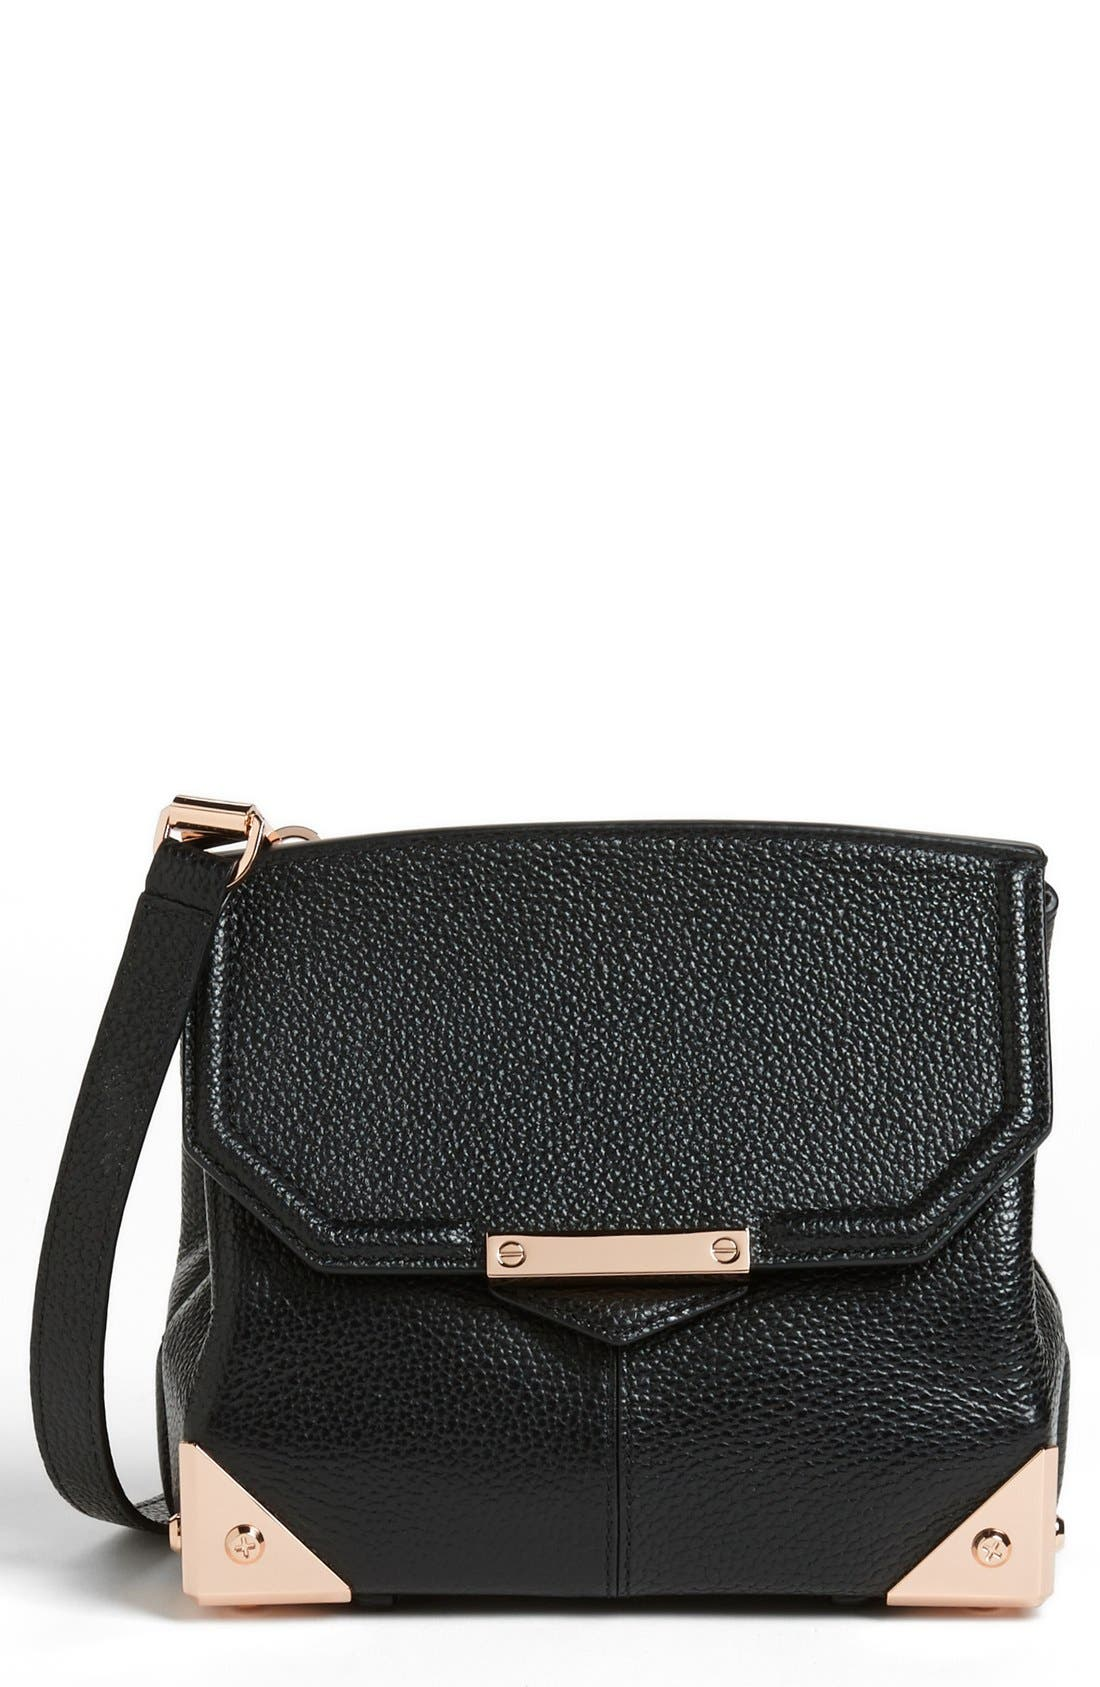 Alternate Image 1 Selected - Alexander Wang 'Marion - Prisma' Leather Crossbody Bag